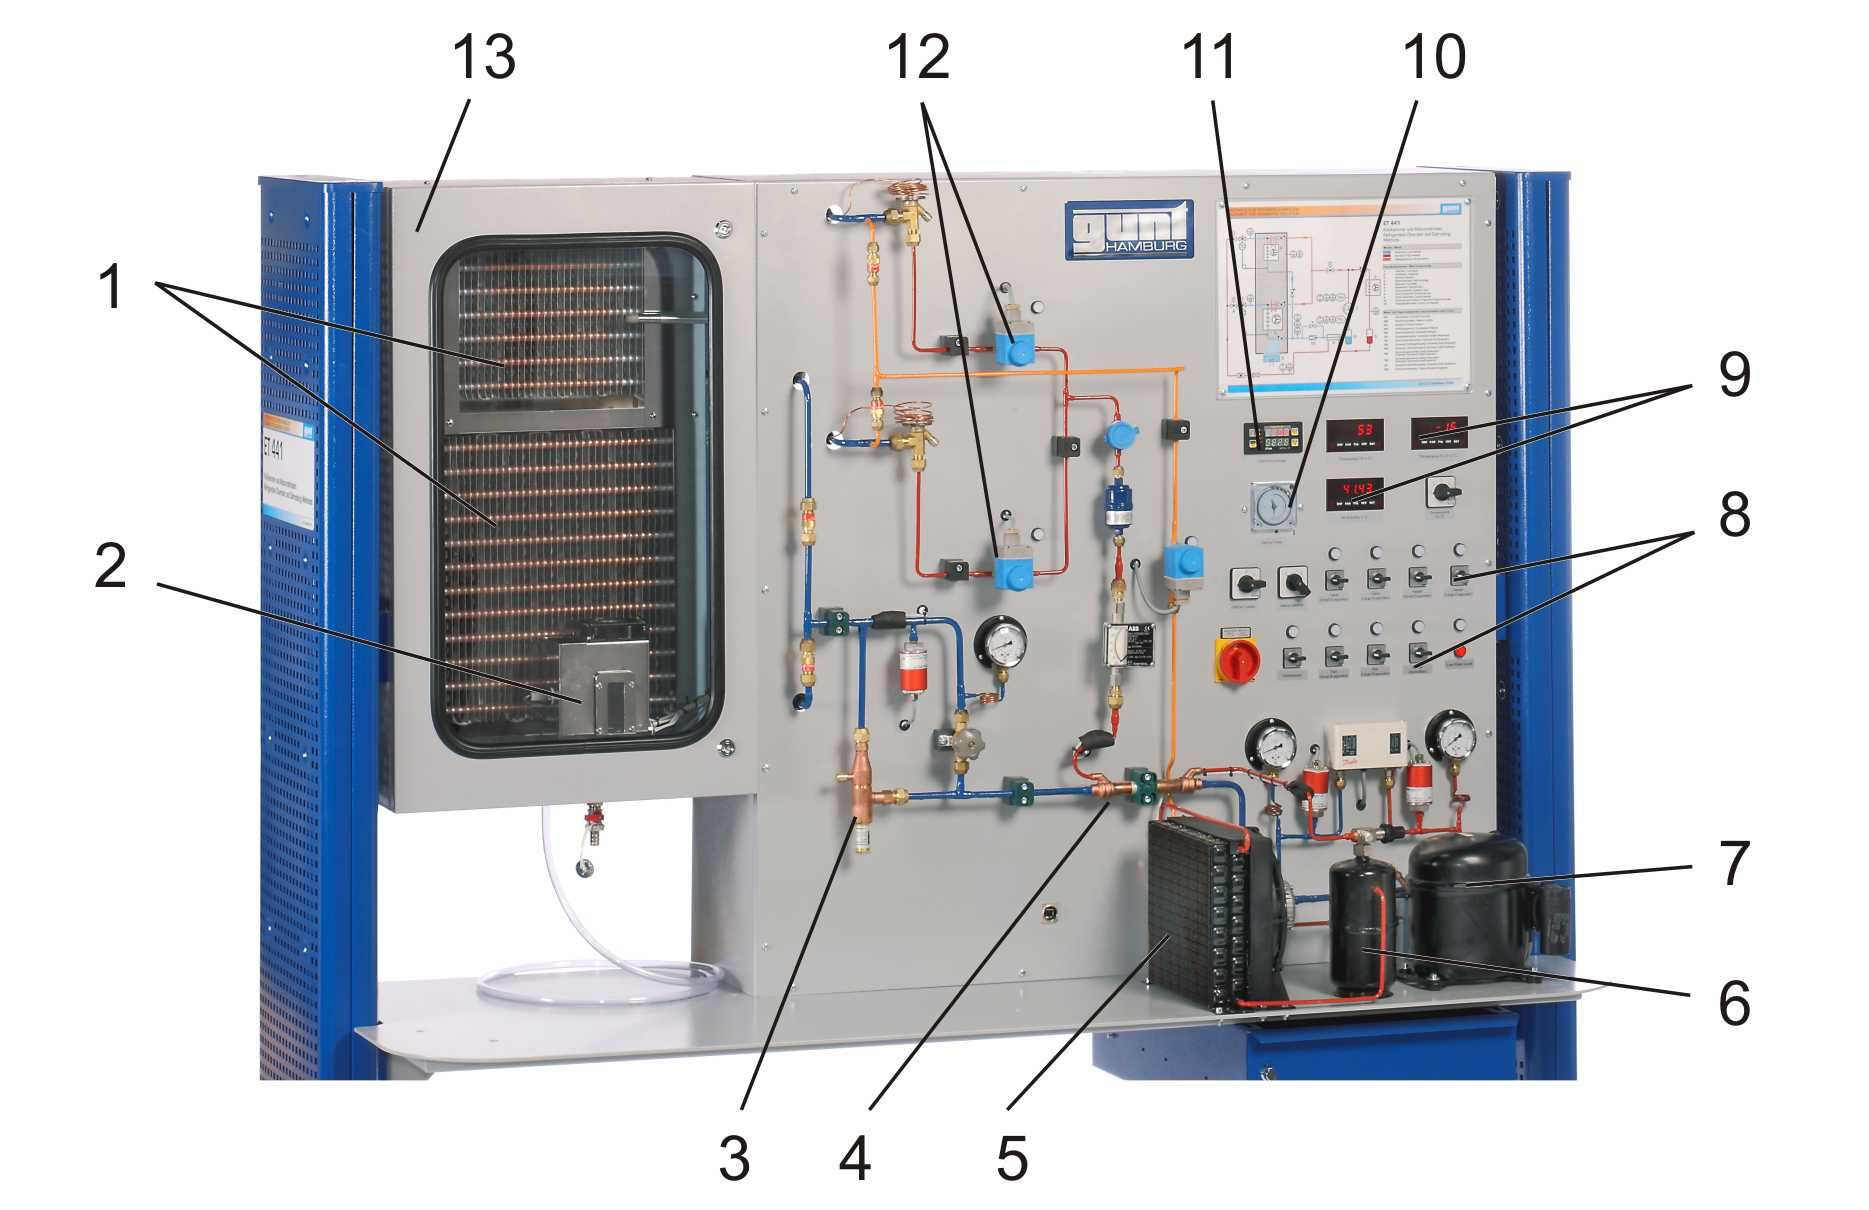 Gunt Equipment For Engineering Education Receivers Refrigeration Wiring Diagrams Heated 1 Evaporator 2 Humidifier 3 Evaporation Pressure Controller 4 Heat Exchanger 5 Condensing Unit 6 Receiver 7 Compressor 8 Controls 9 Temperature And